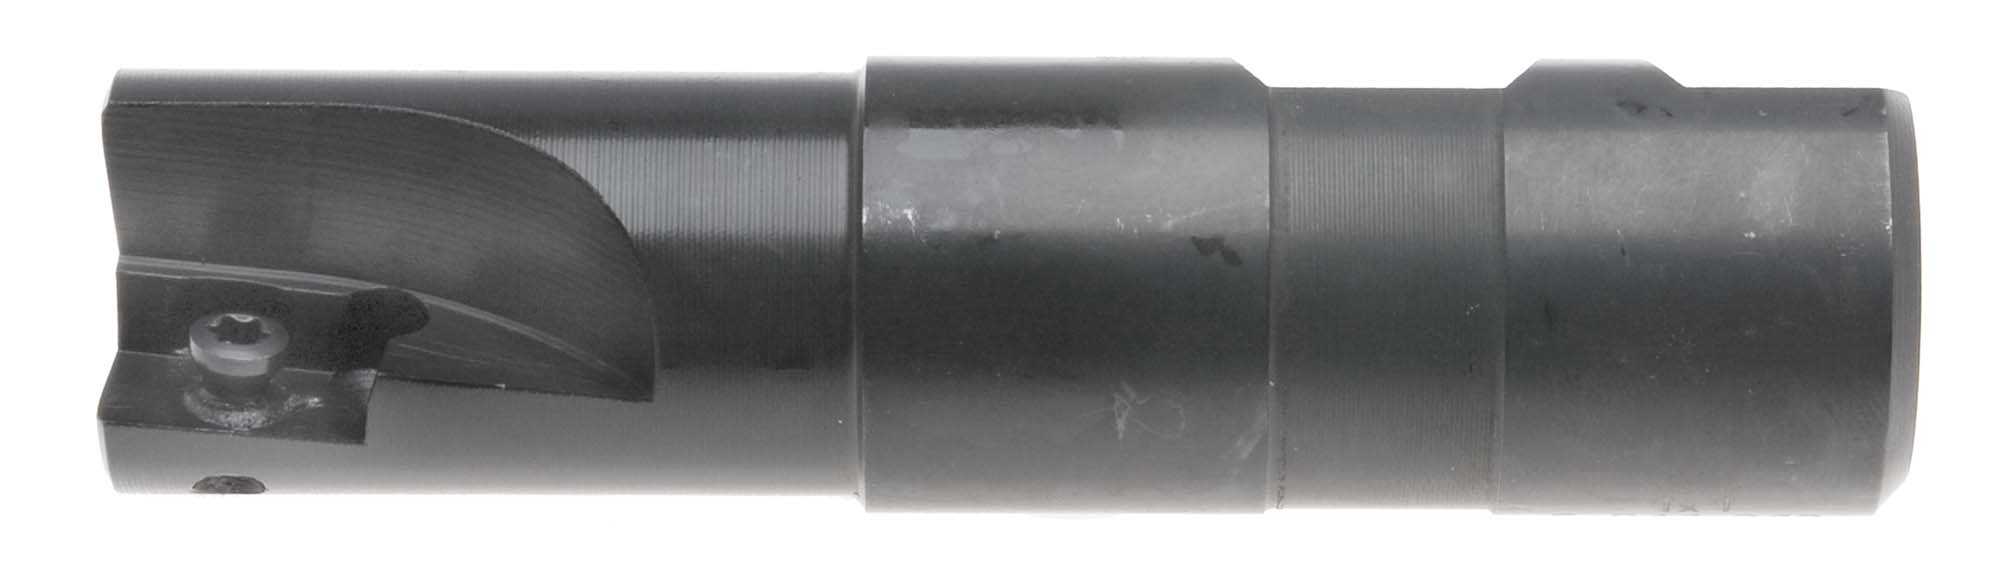 "TMX 6-941-125  2-1/2""APKT Indexable End Mill"